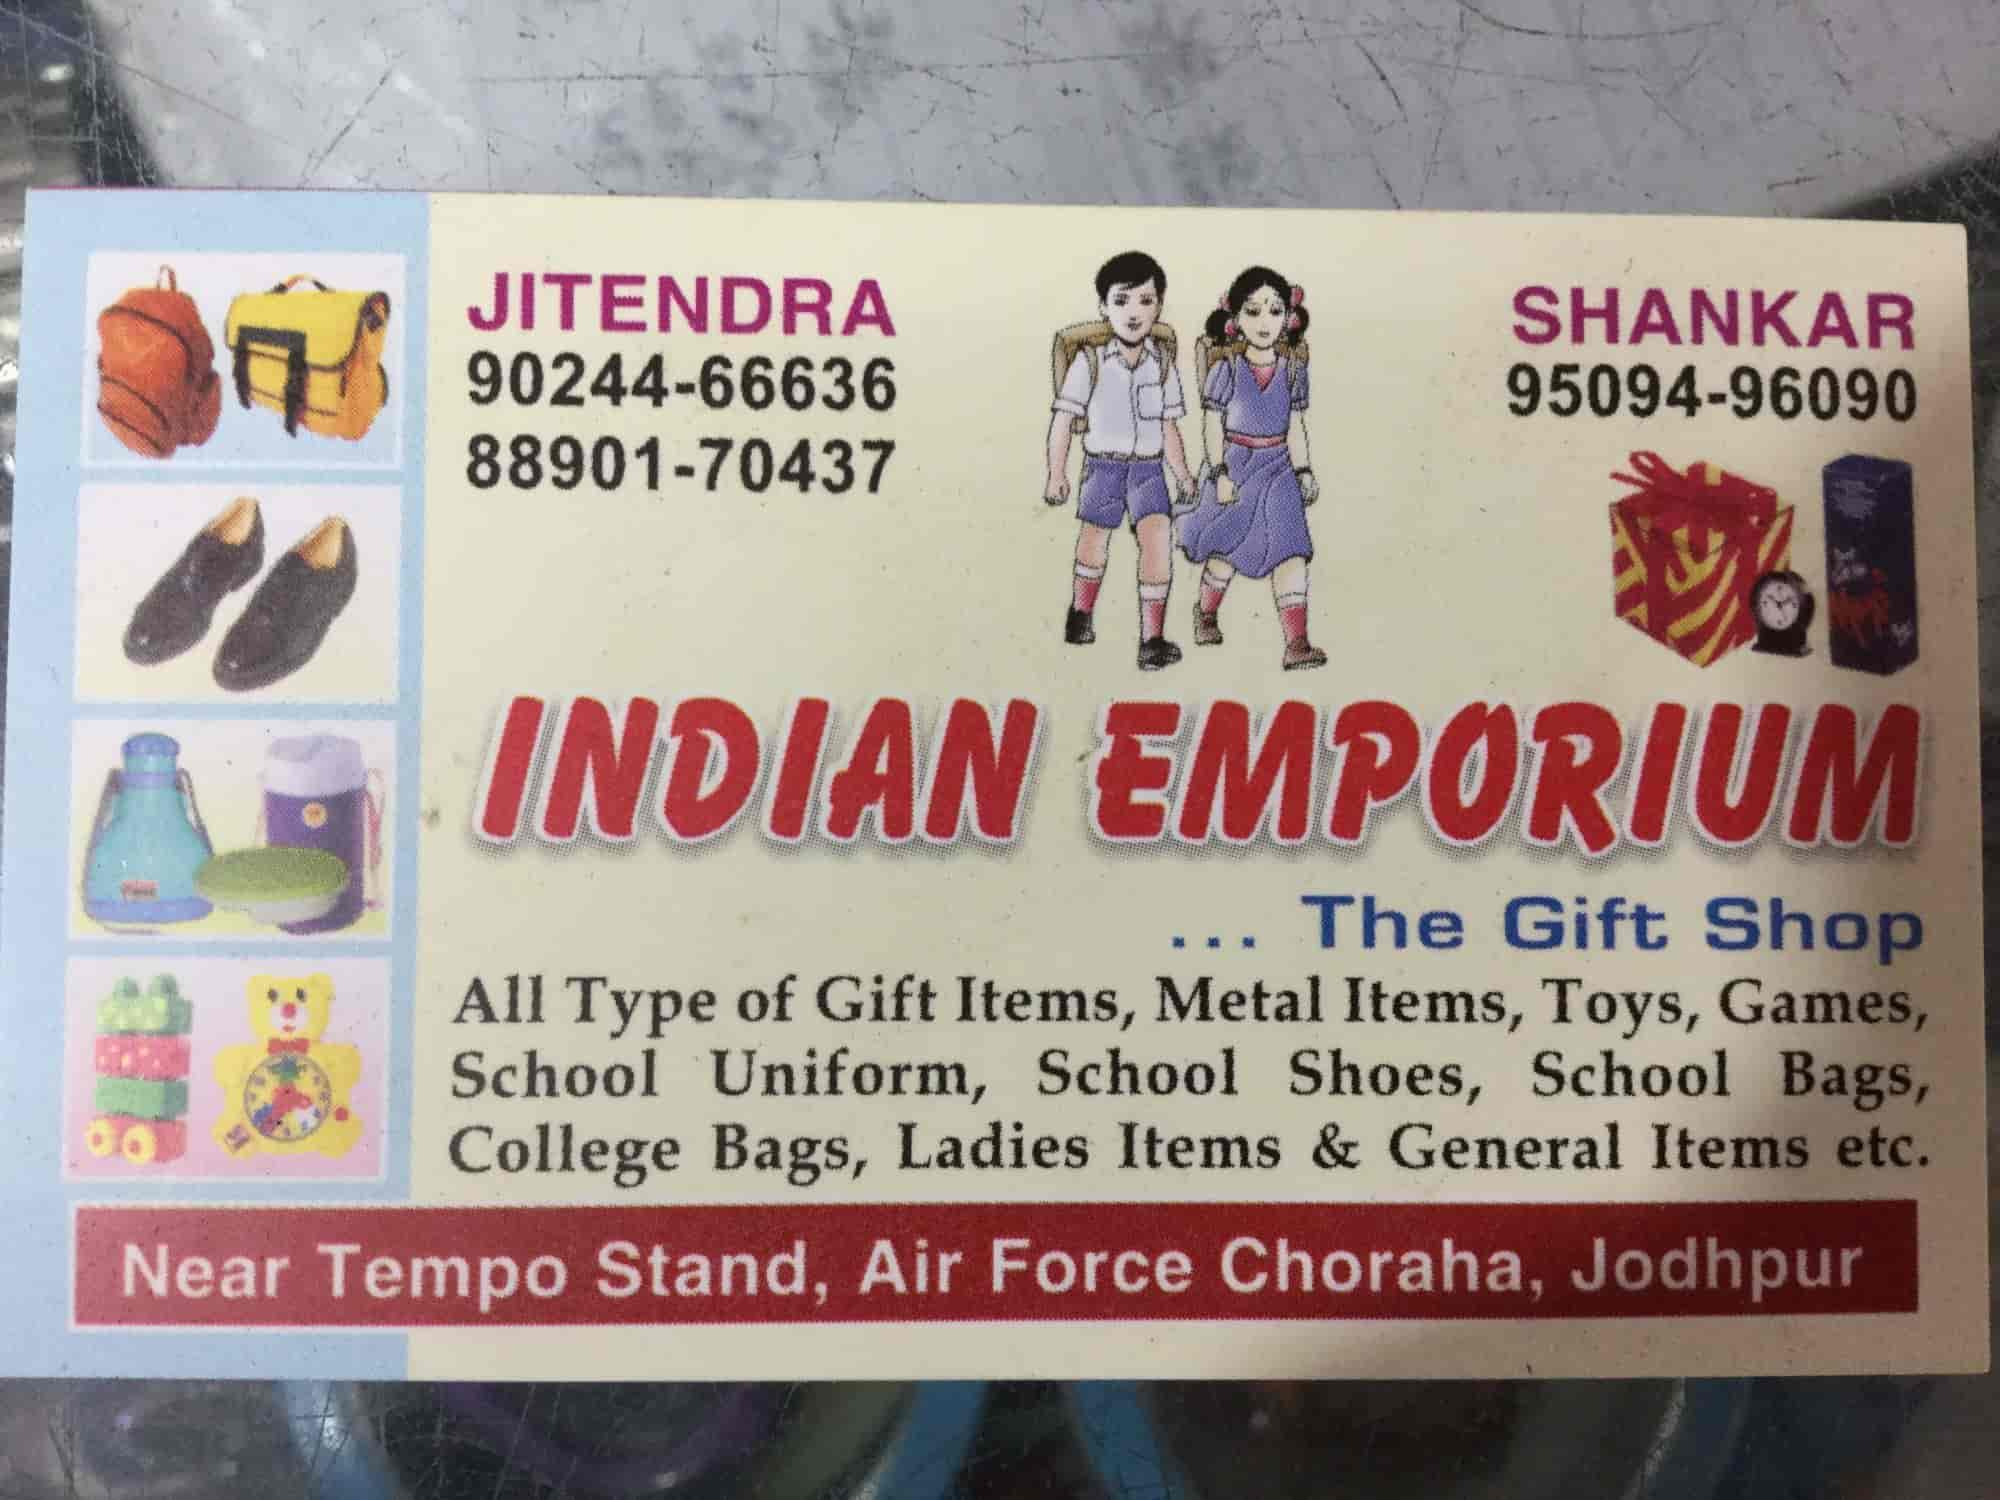 Indian Emporium, Air Force Area - Gift Shops in Jodhpur